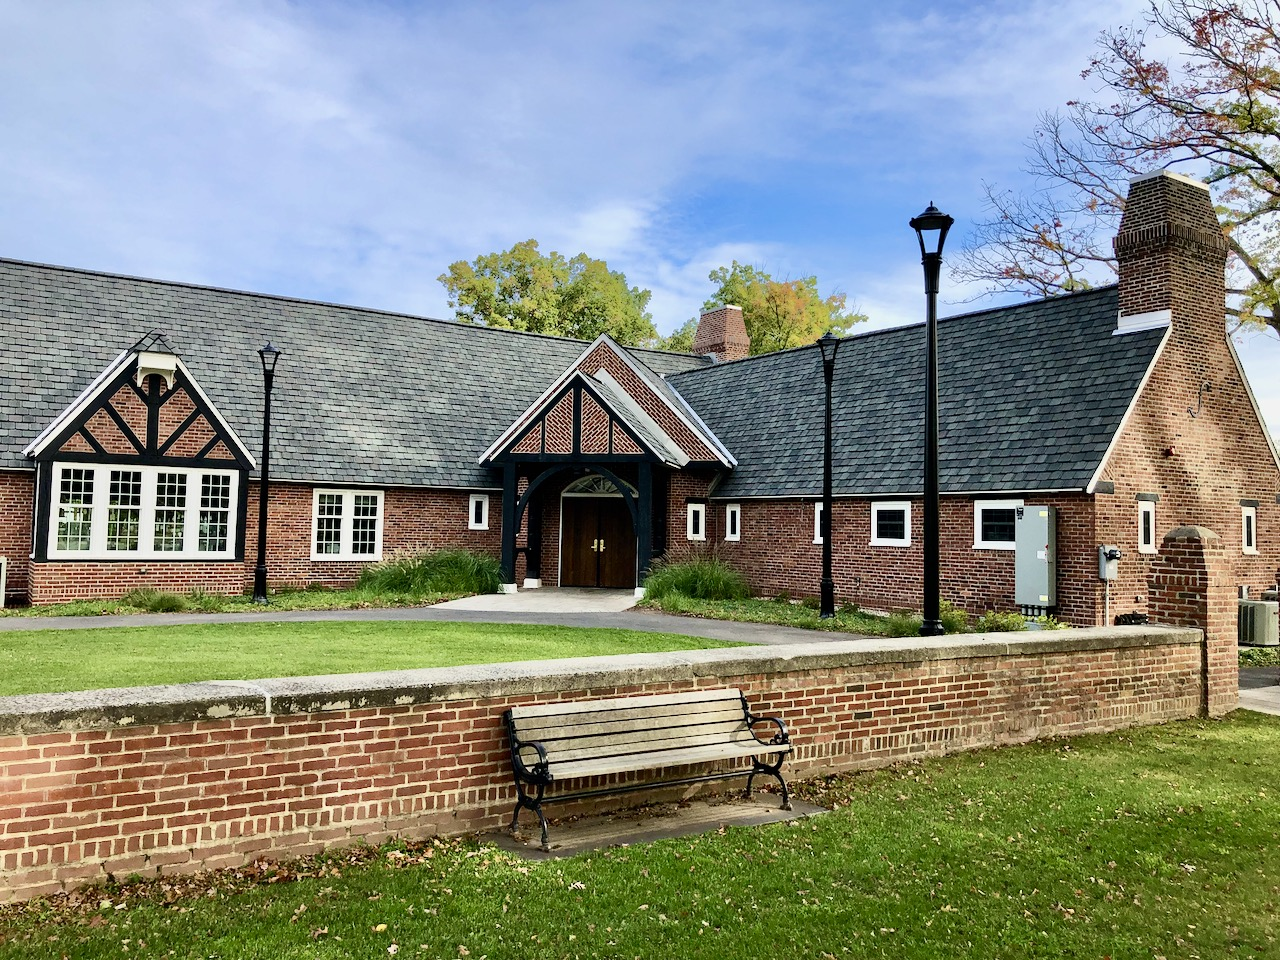 The Keney Park Clubhouse has been restored to its former (1934) glory and is a great place for a post-round meal and drink.